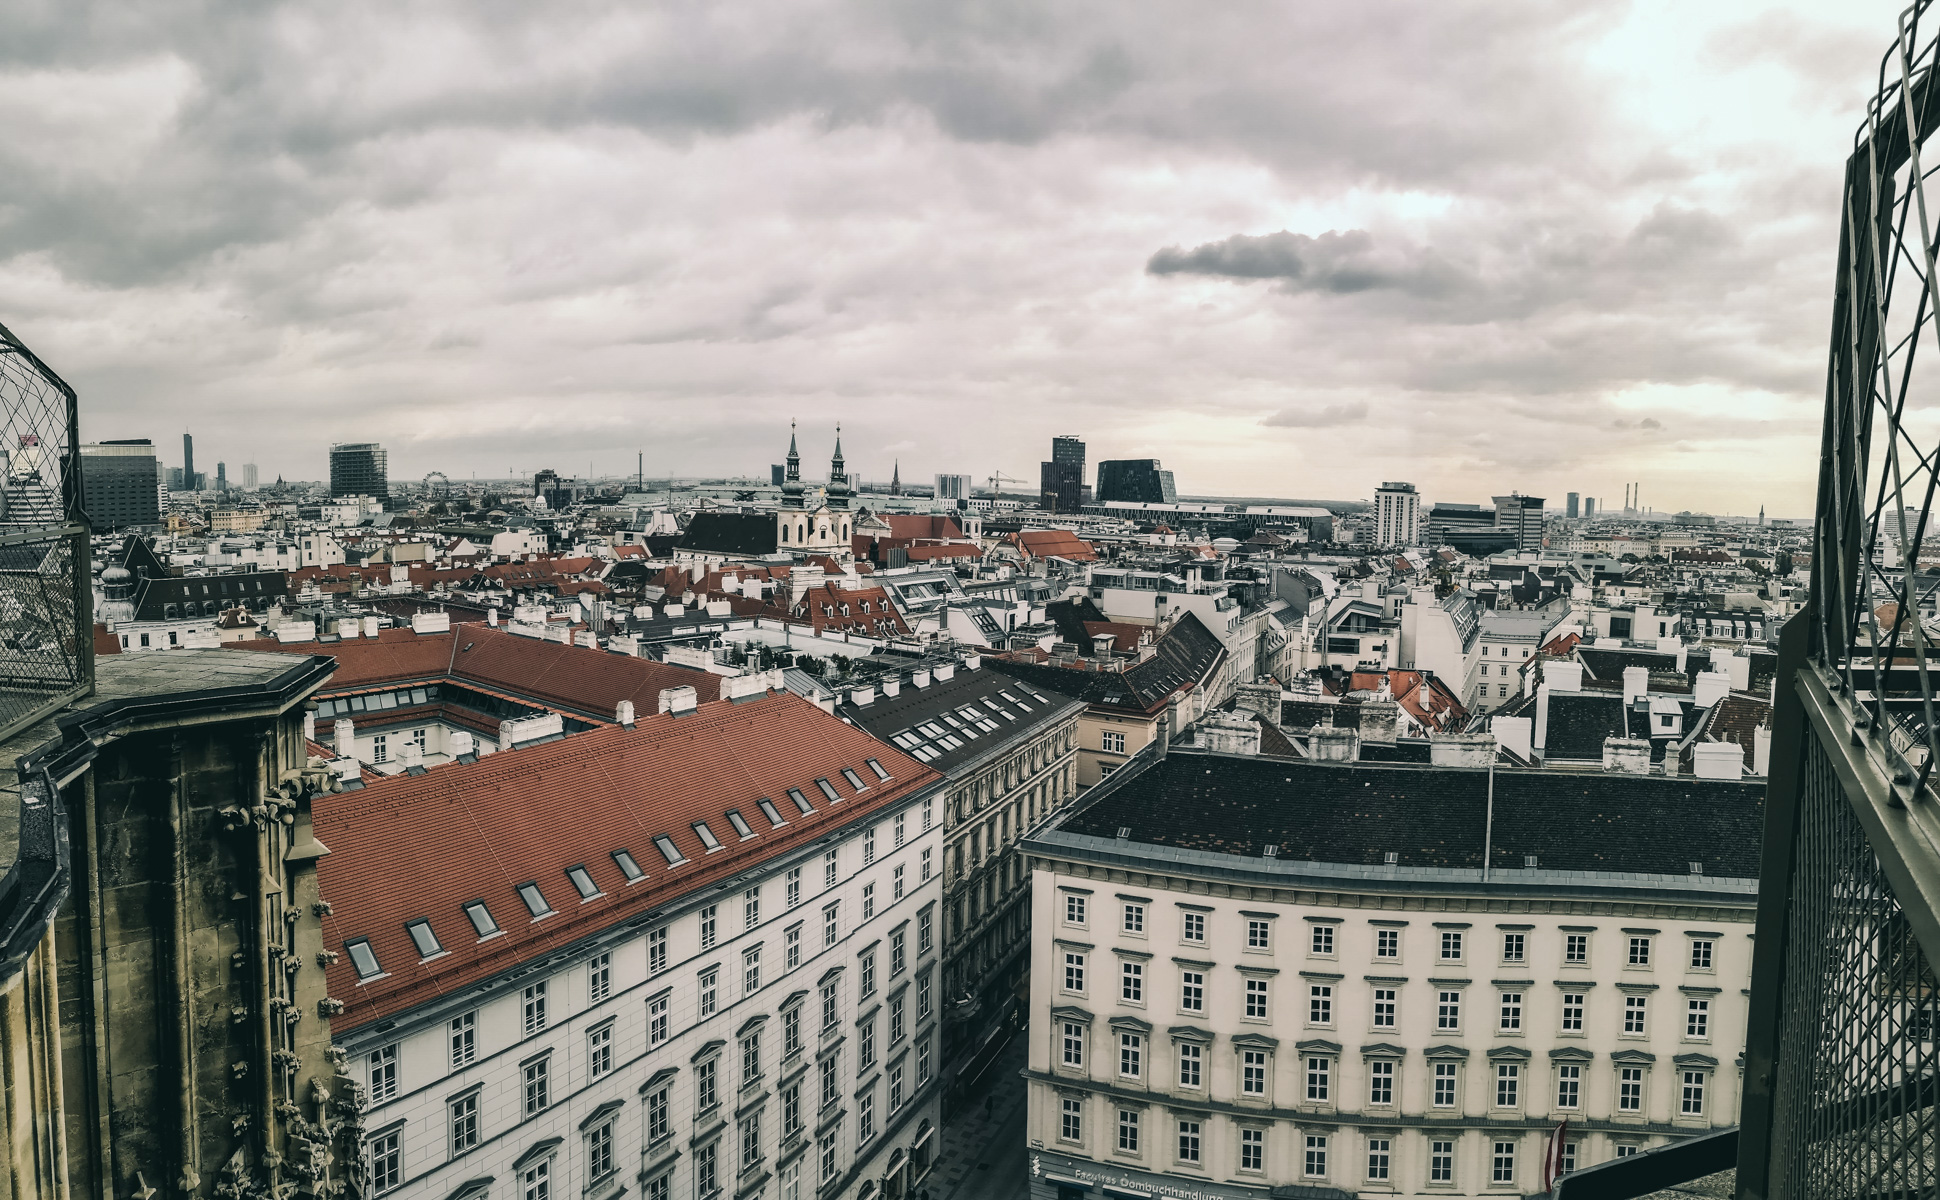 Tommeezjerry-Lifestyleblog-Fashionblog-Maennermodeblog-Maennerblog-Modeblog-Grooming-Huawei-Mate-10-Pro-Photography-Vienna-Traveldiary-Travelreview